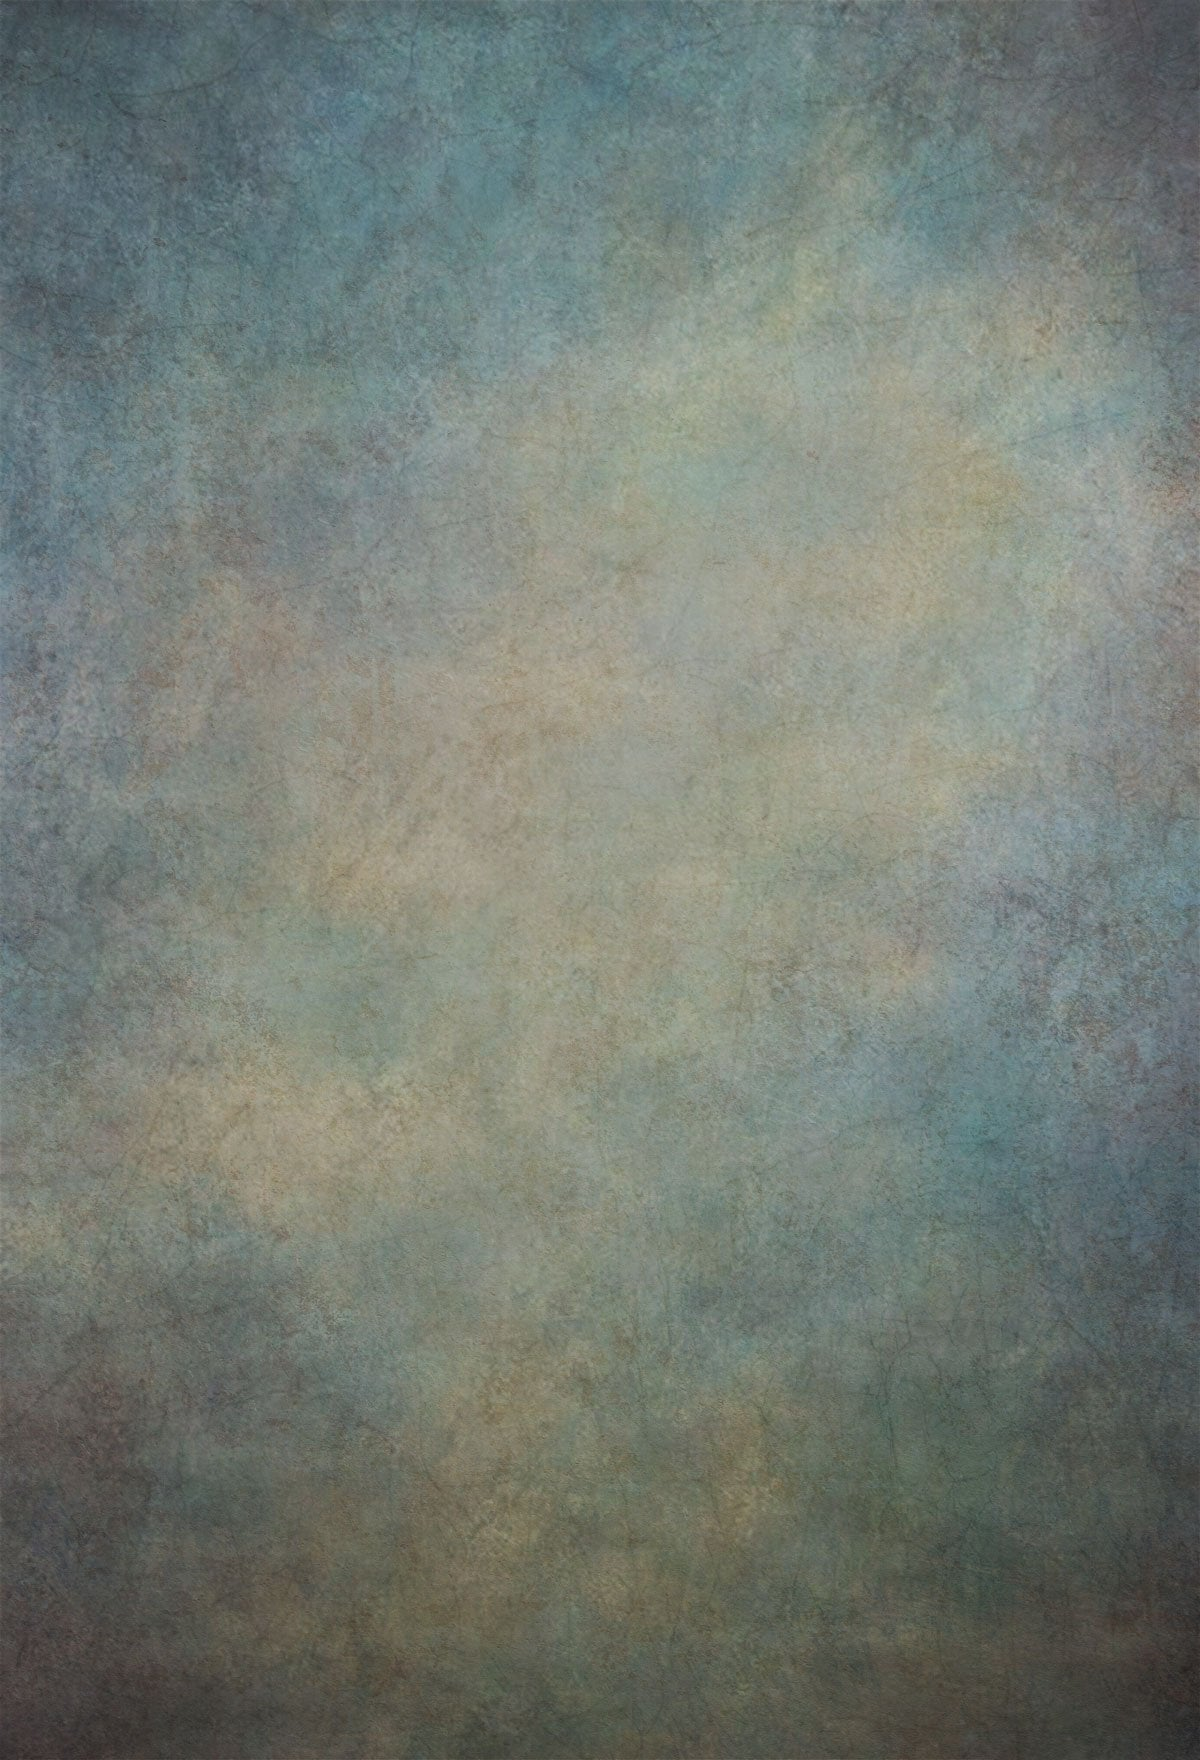 Load image into Gallery viewer, Kate Abstract Texture Backdrop Rusty Photos for Portrait Photography-Clearance  8x8ft(2.5x2.5m) - Kate backdrops UK